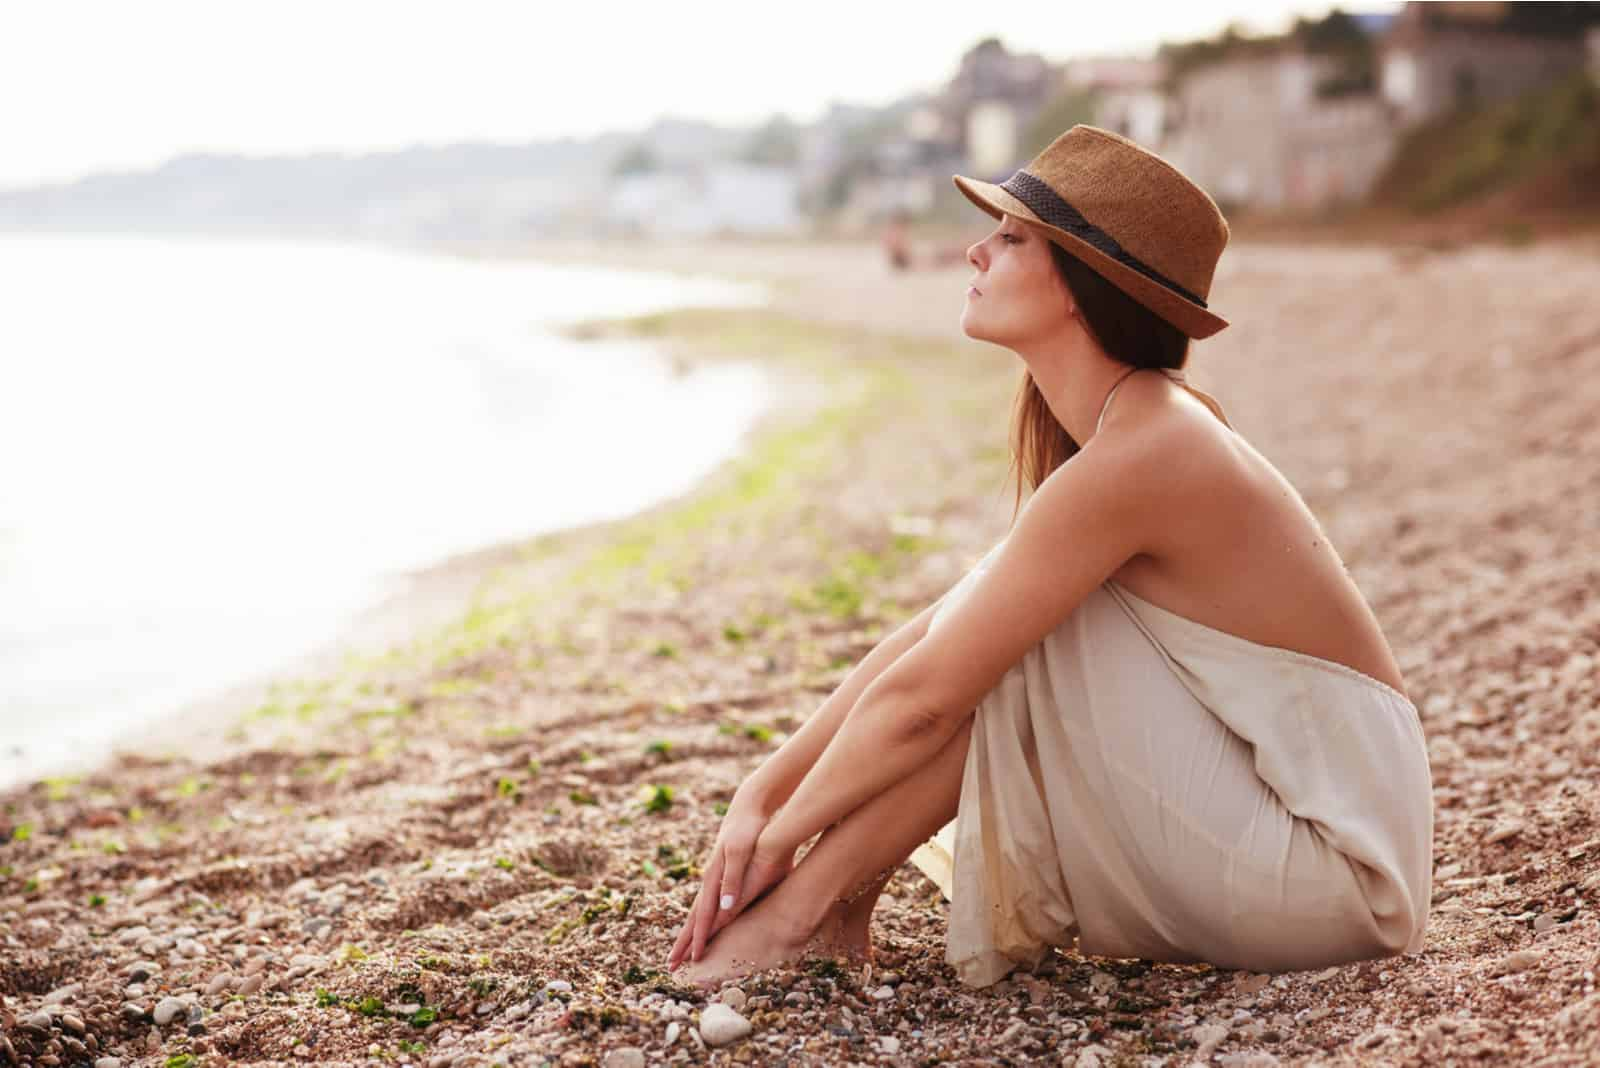 an imaginary woman with a hat on her head is sitting on the beach